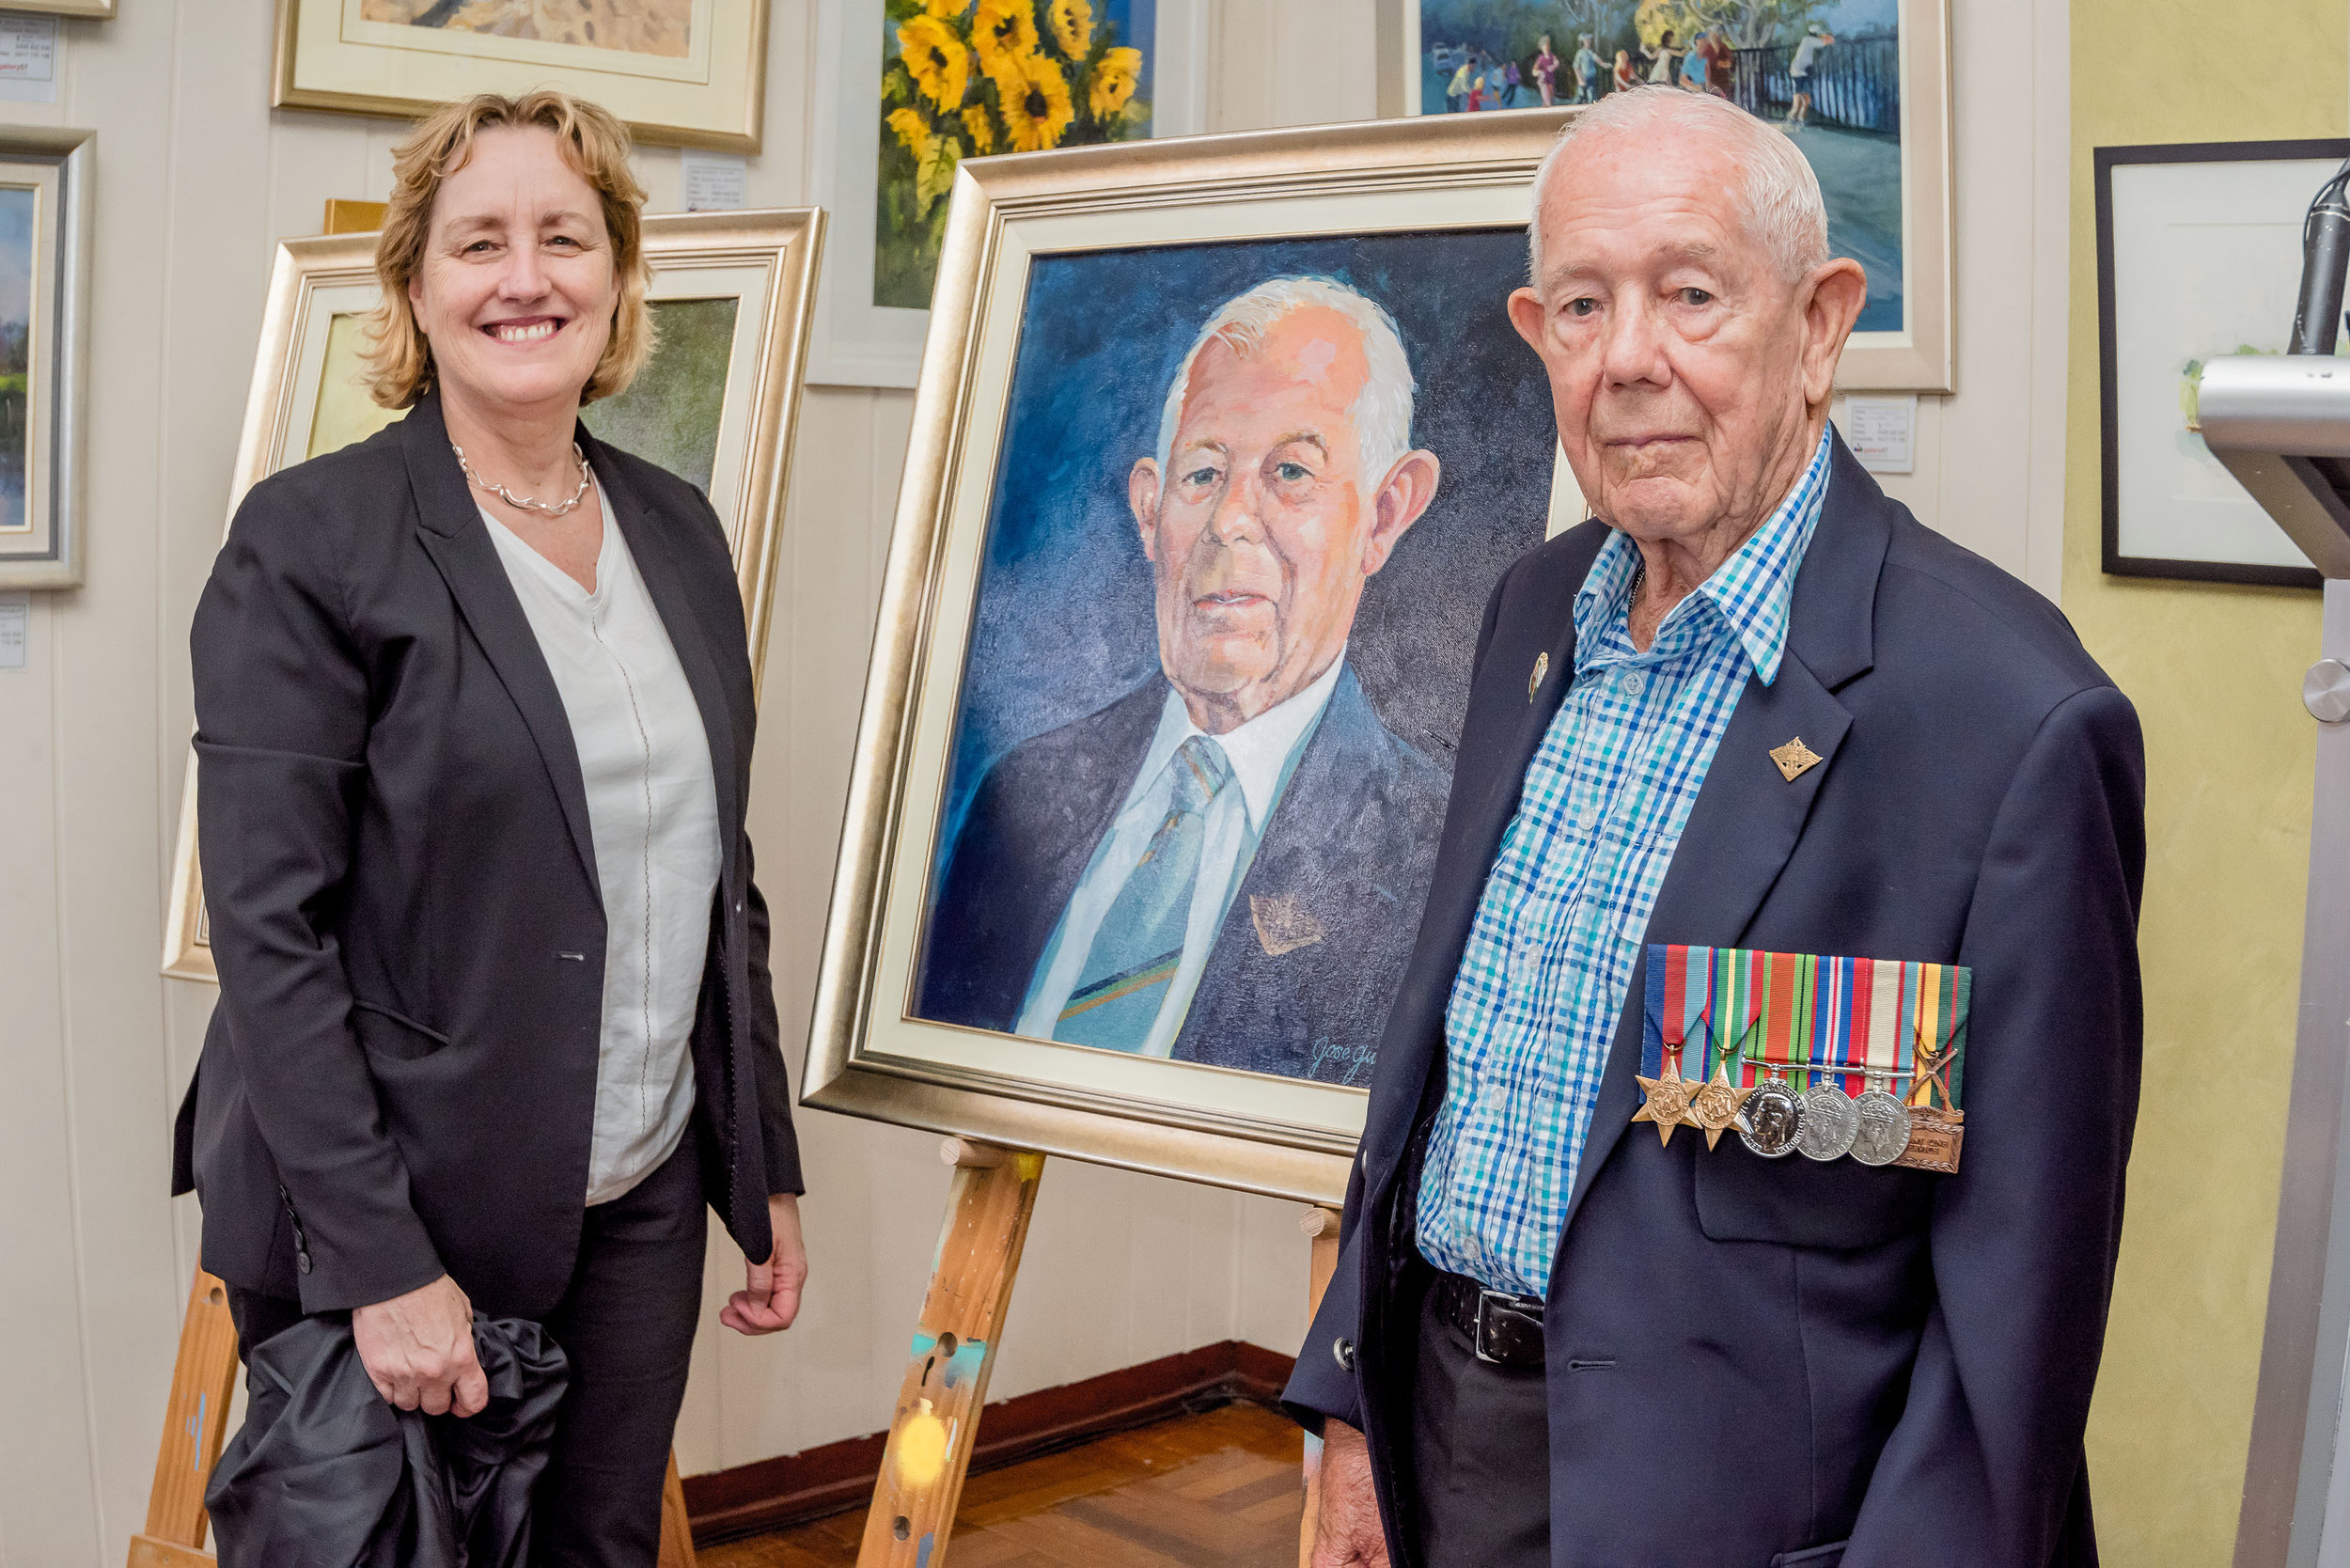 Unveiling the portrait of WWII Veteran Reginald James Chard by himself and SLHD CE Dr. Teresa Anderson.jpg